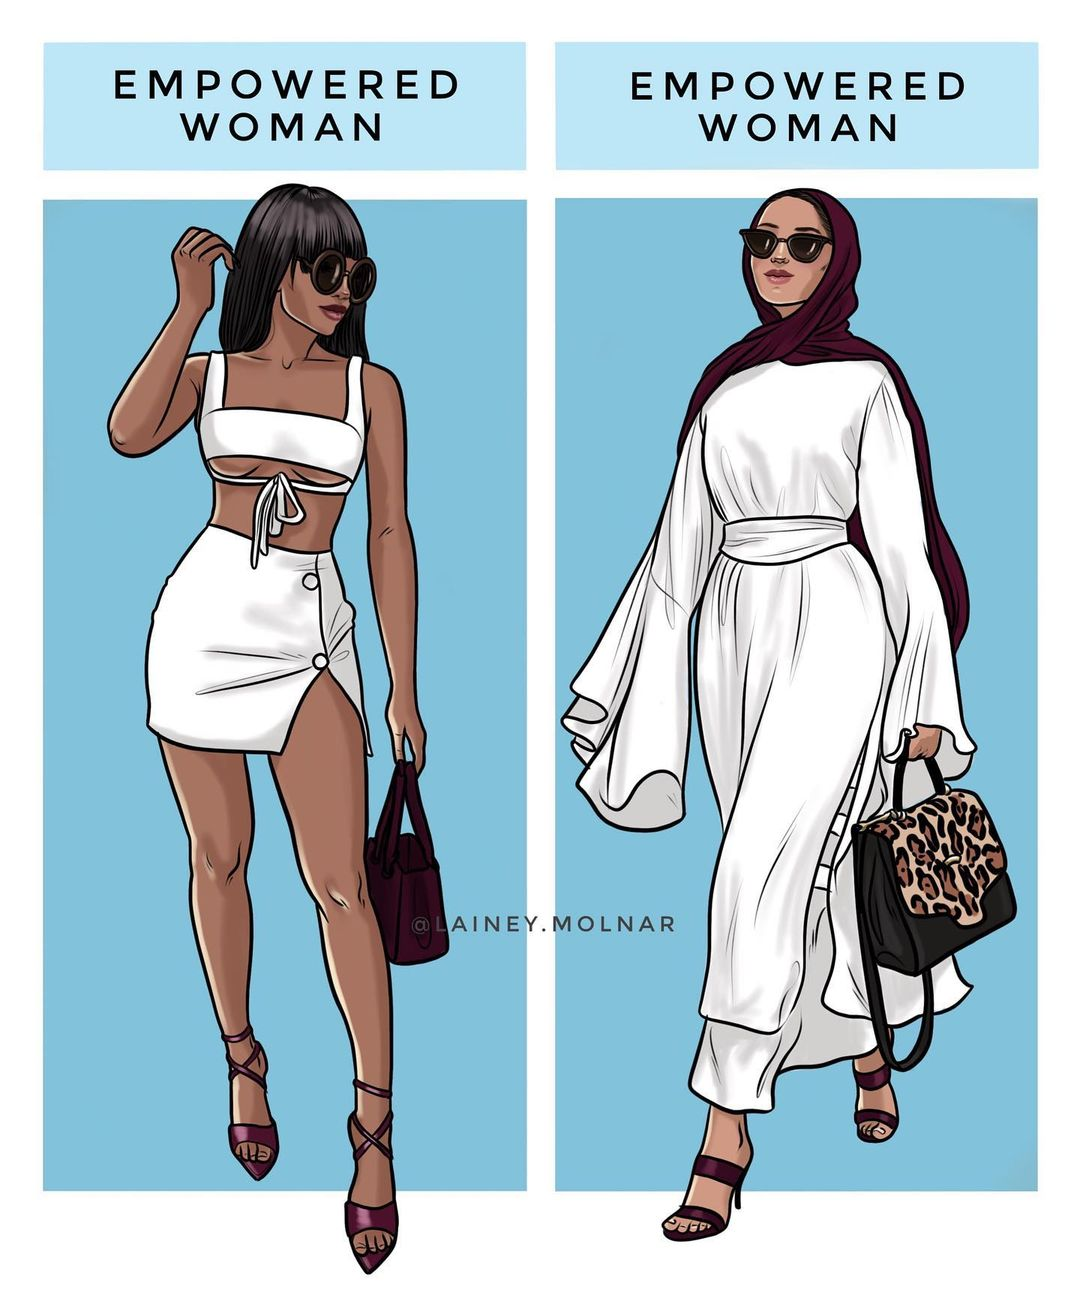 Artist Lainey Molnar creates an illustration showing an empowered woman.